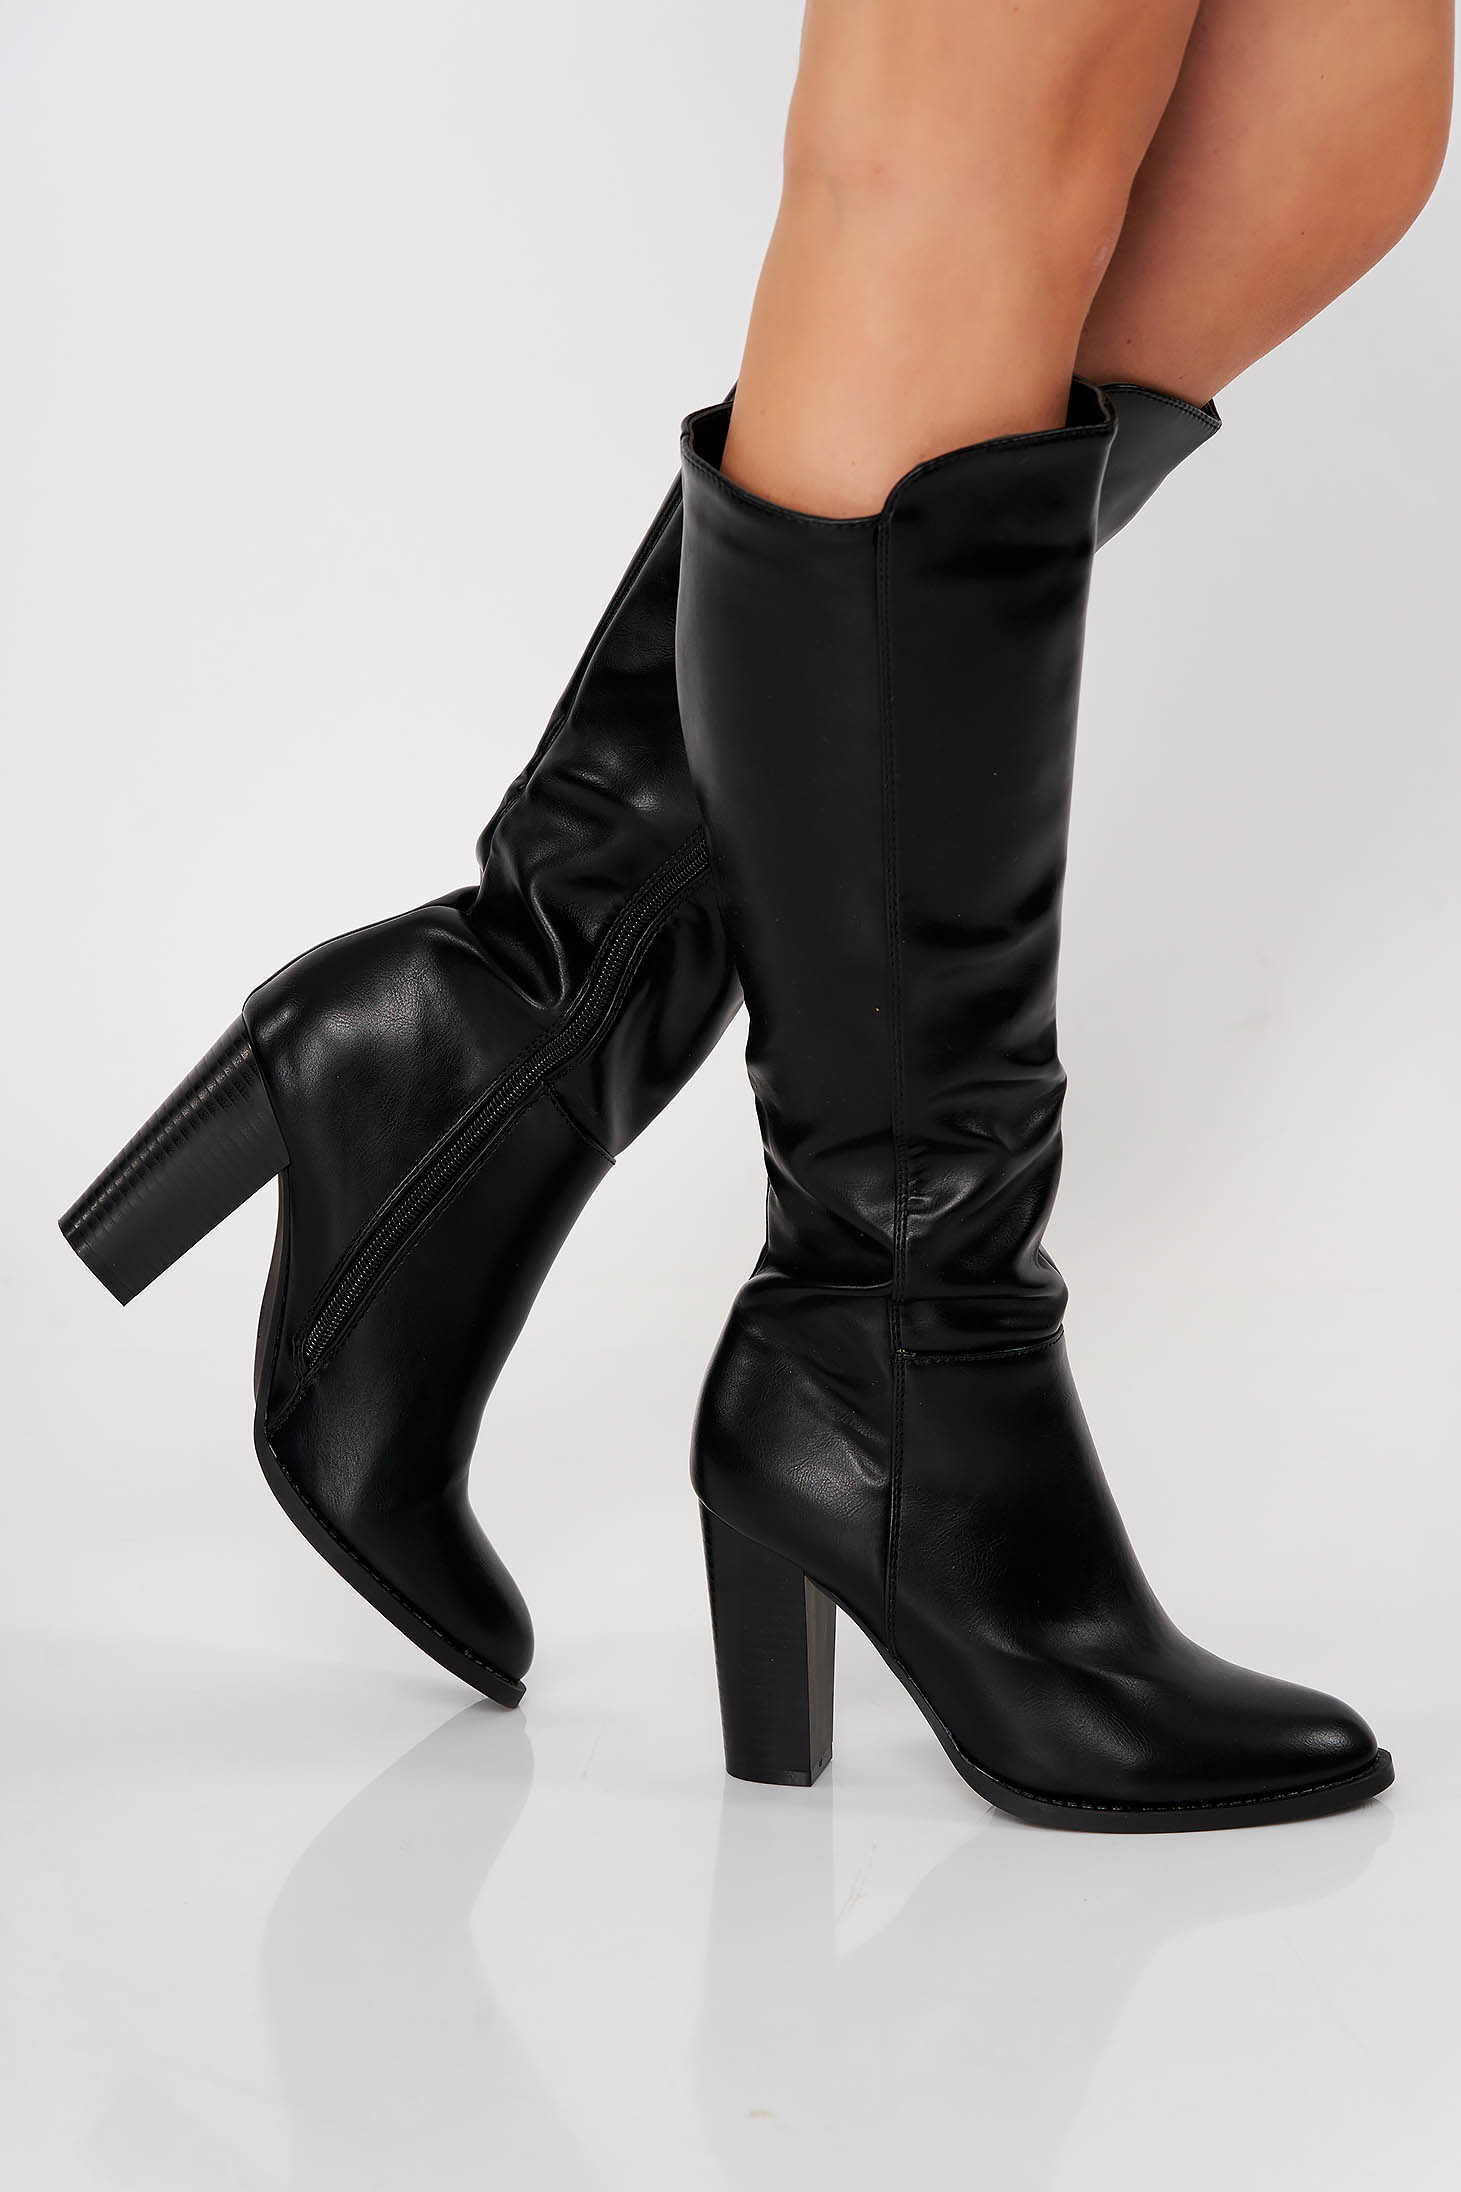 Black office boots from ecological leather chunky heel